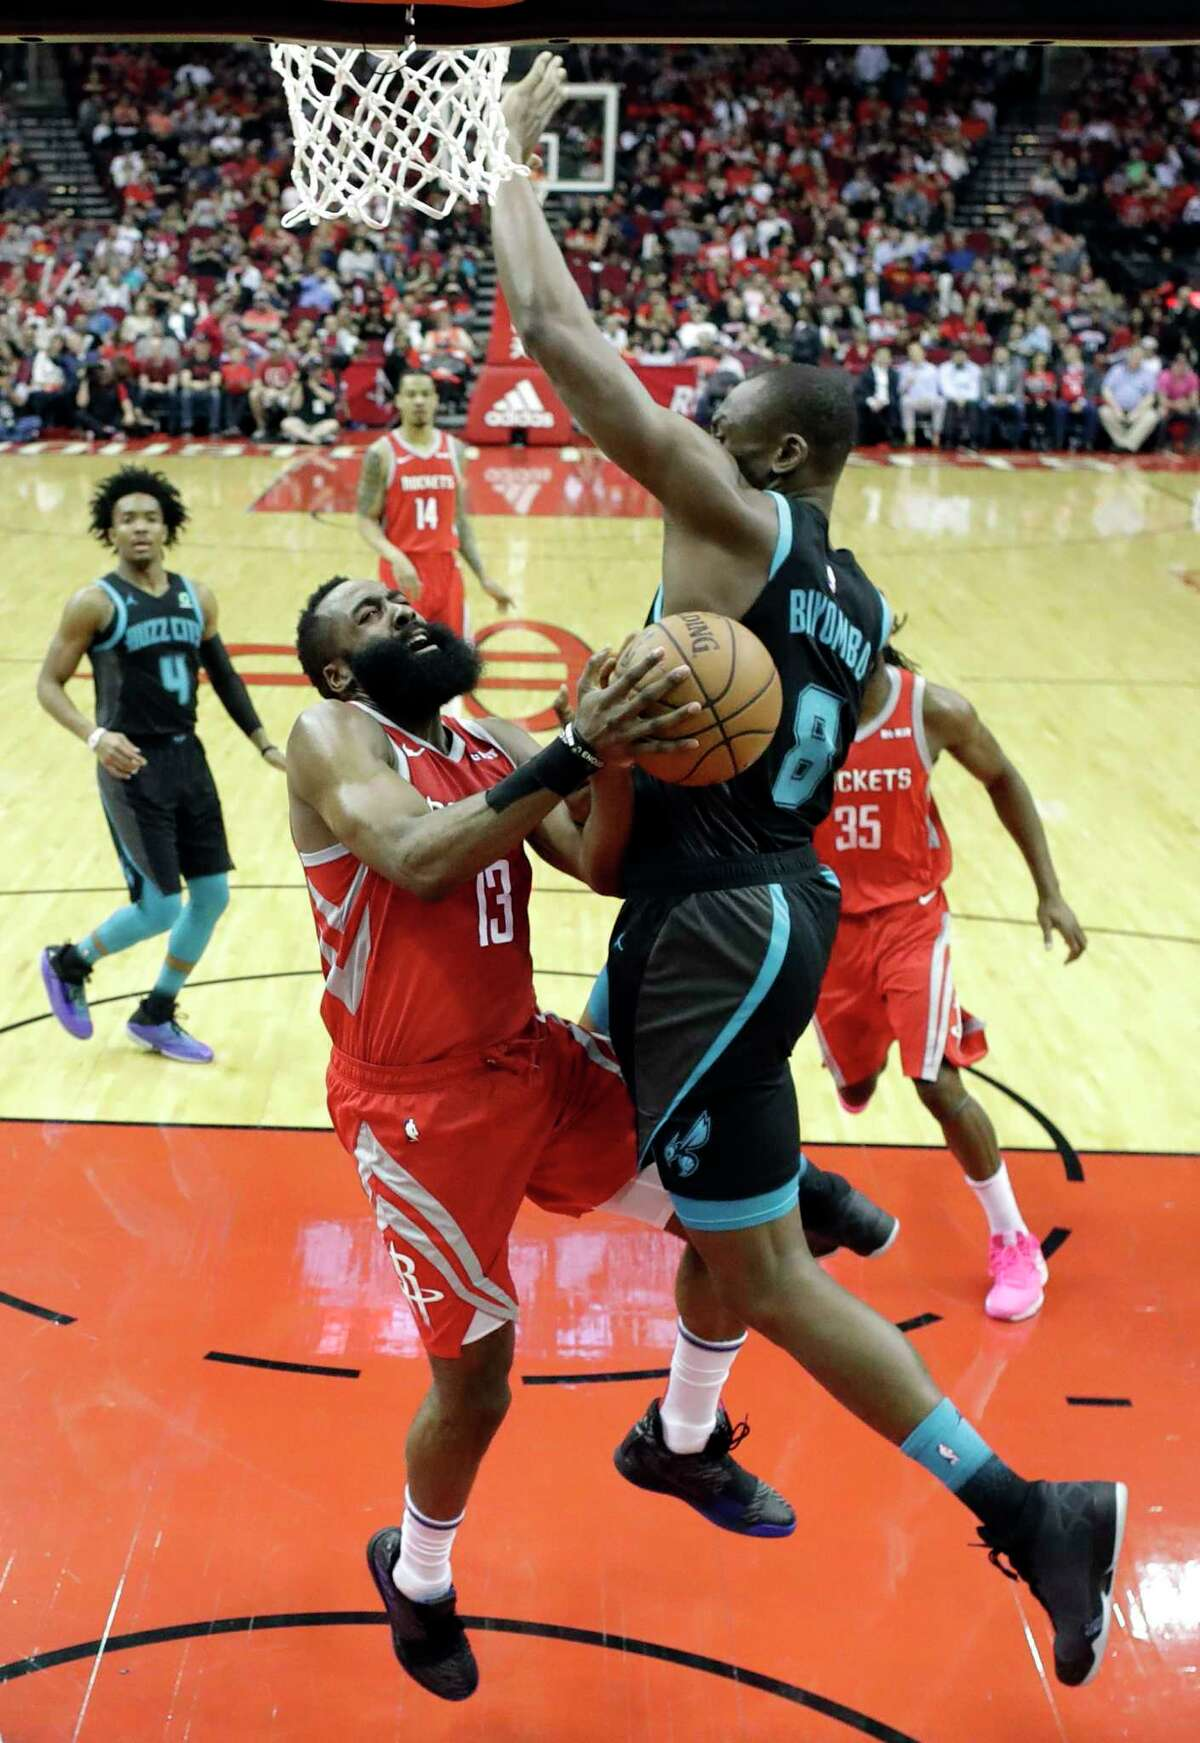 Houston Rockets' James Harden (13) is fouled by Charlotte Hornets' Bismack Biyombo (8) during the first half of an NBA basketball game Monday, March 11, 2019, in Houston. (AP Photo/David J. Phillip)